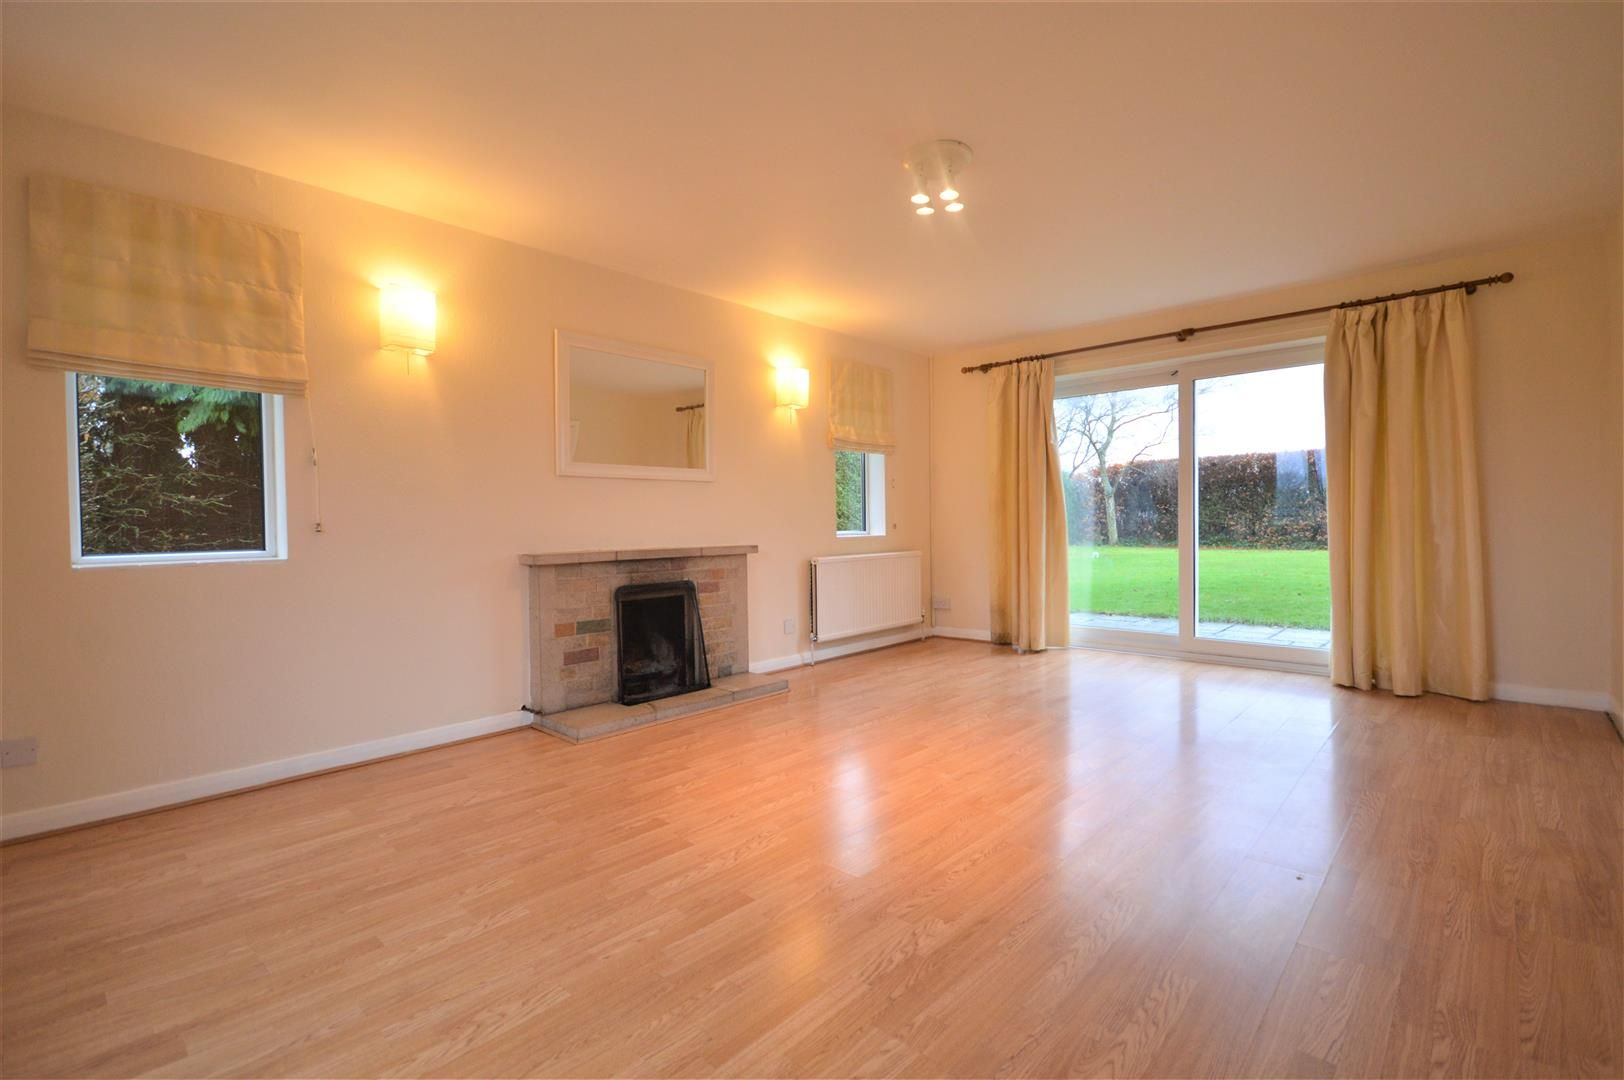 4 bed detached to rent in Kingsland  - Property Image 3